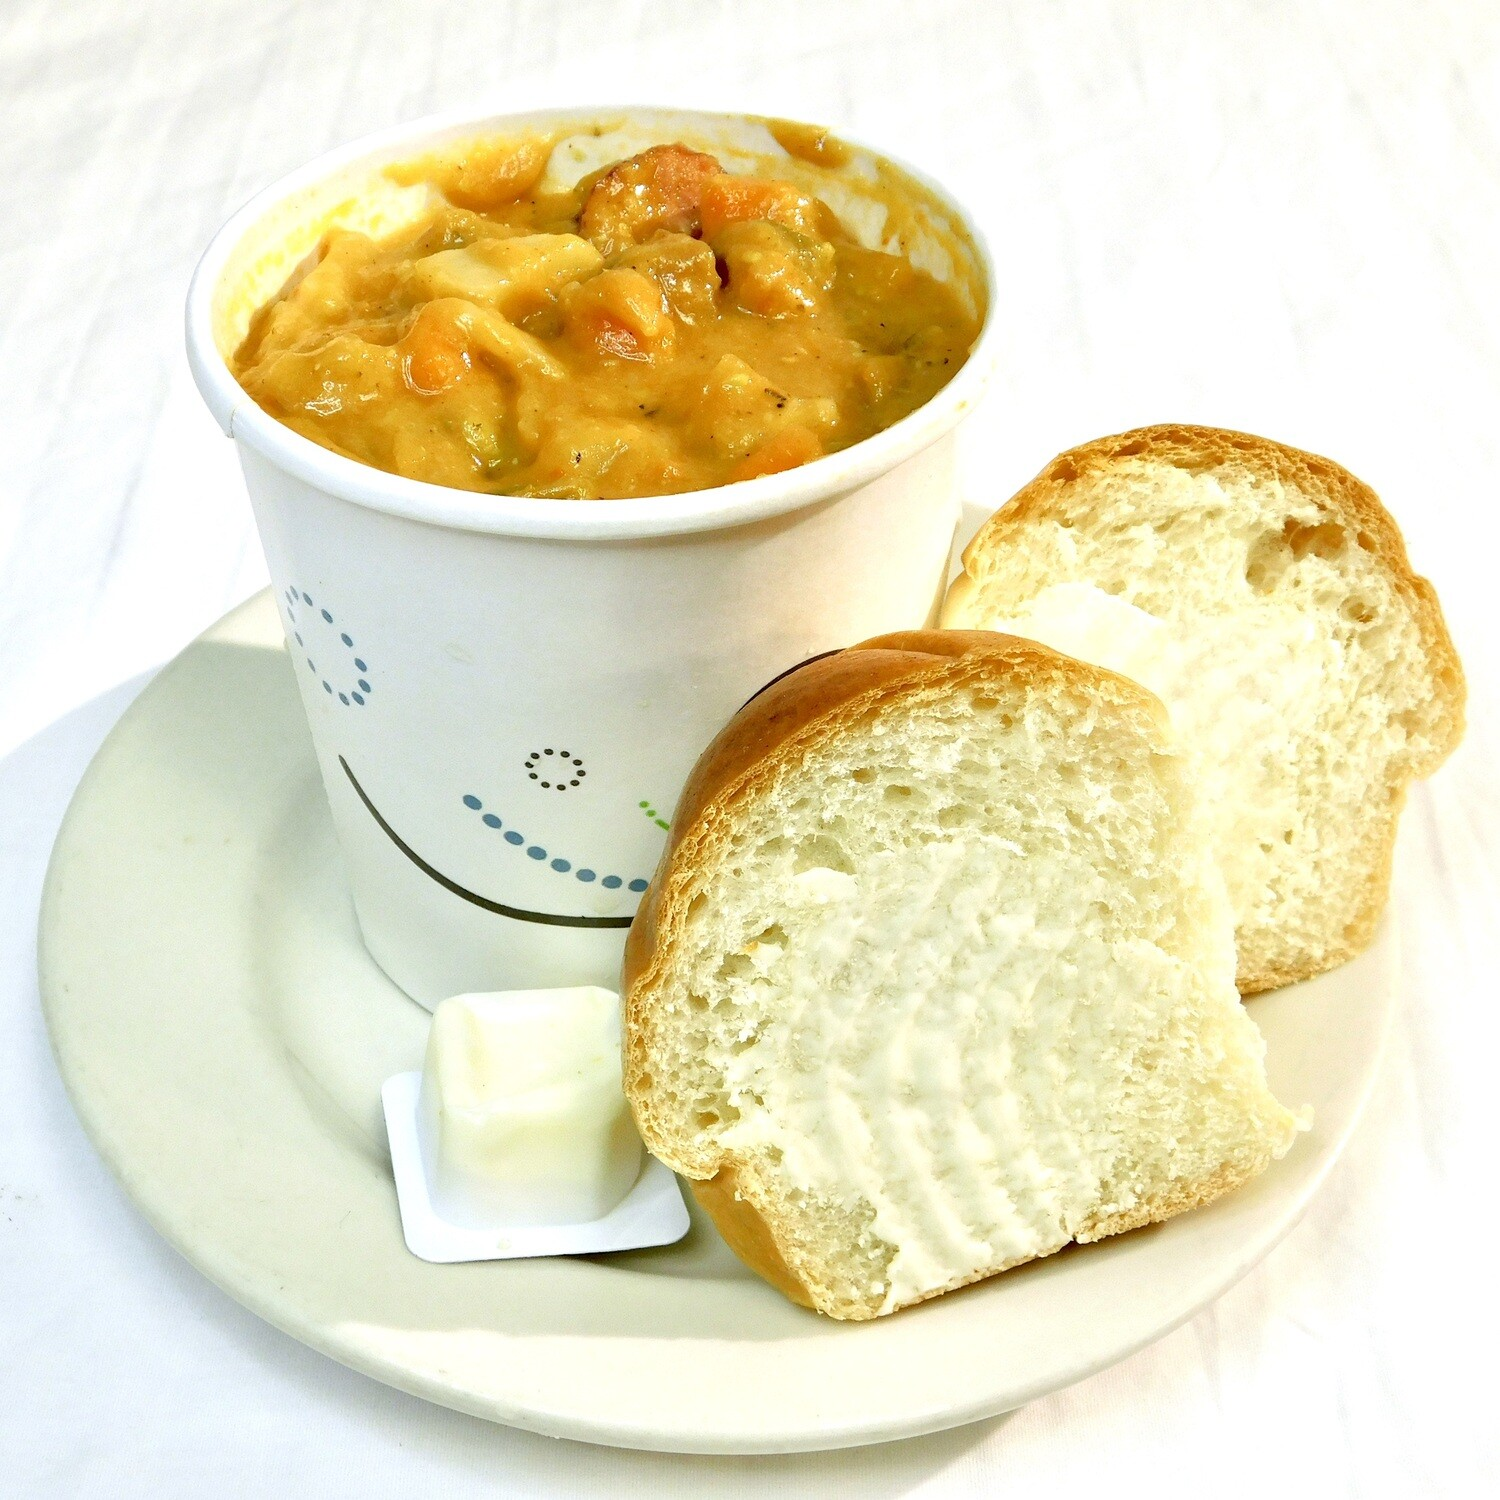 Soup/Stew-Lunch Special